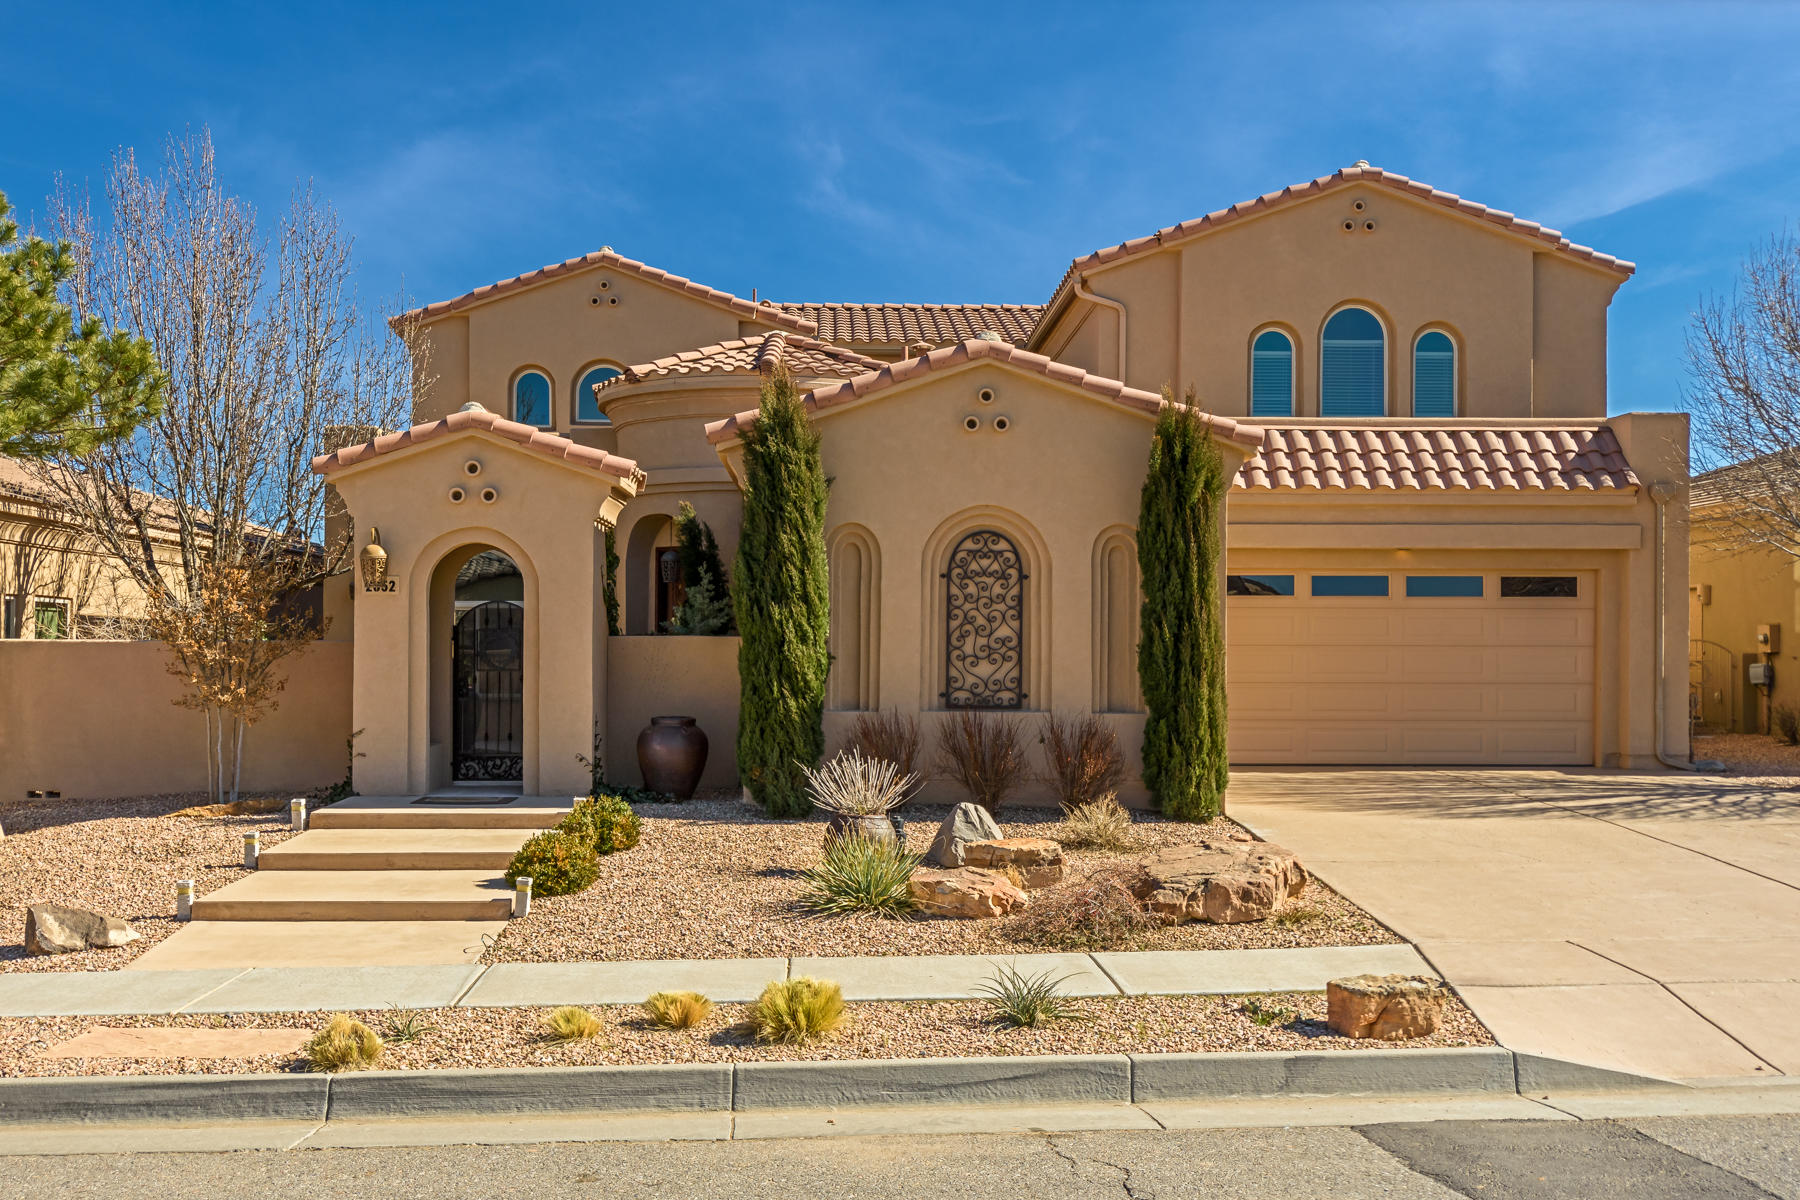 Spectacular former model home in Mariposa with outstanding views of Sandias!  Upscale elegant touches throughout!  Entry features courtyard with a rotunda entrance, spacious kitchen with custom cabinets, solid surface counter tops and upgraded appliances. Breakfast nook open to family room with gas fireplace and formal dining or living area.  Guest suite/office on main level with private bath.  Interior courtyard with fireplace off the office and kitchen.  Large master suite with jetted tub,  separate shower, double sinks, walk-in closets and deck with unobstructed views!  2 additional bedrooms upstairs with Jack & Jill bath.  Trey ceilings, ambient lighting, covered patio, fully landscaped & 3-car garage. Amenities galore!  Community pool and club house, plus playground area and gym.